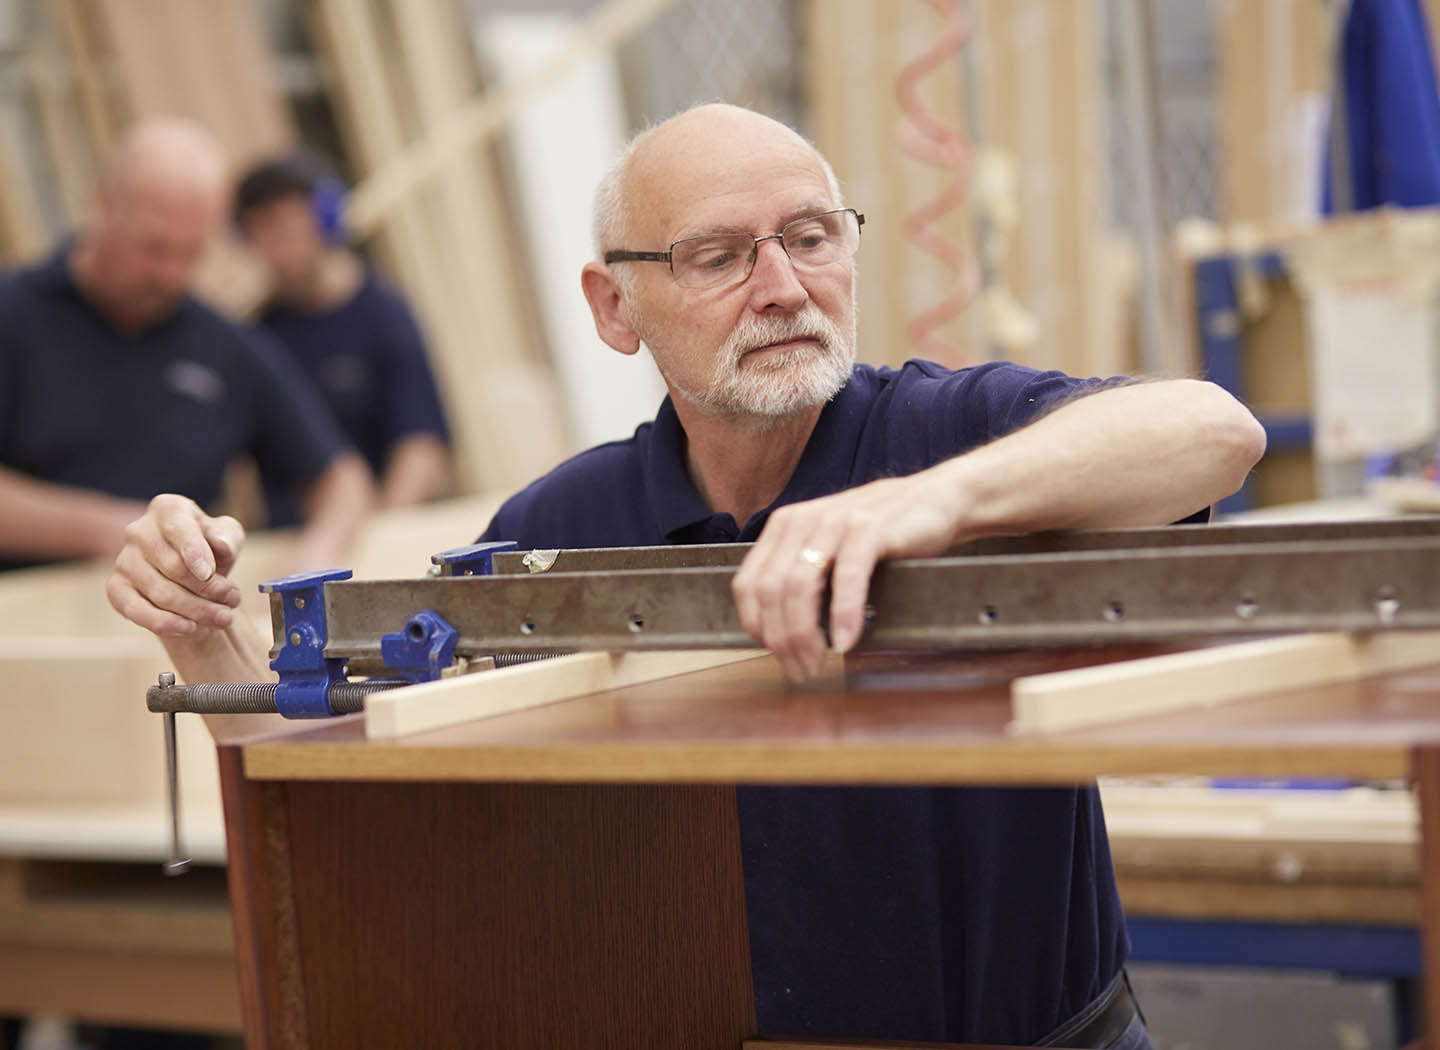 Experienced craftsman working on your furniture